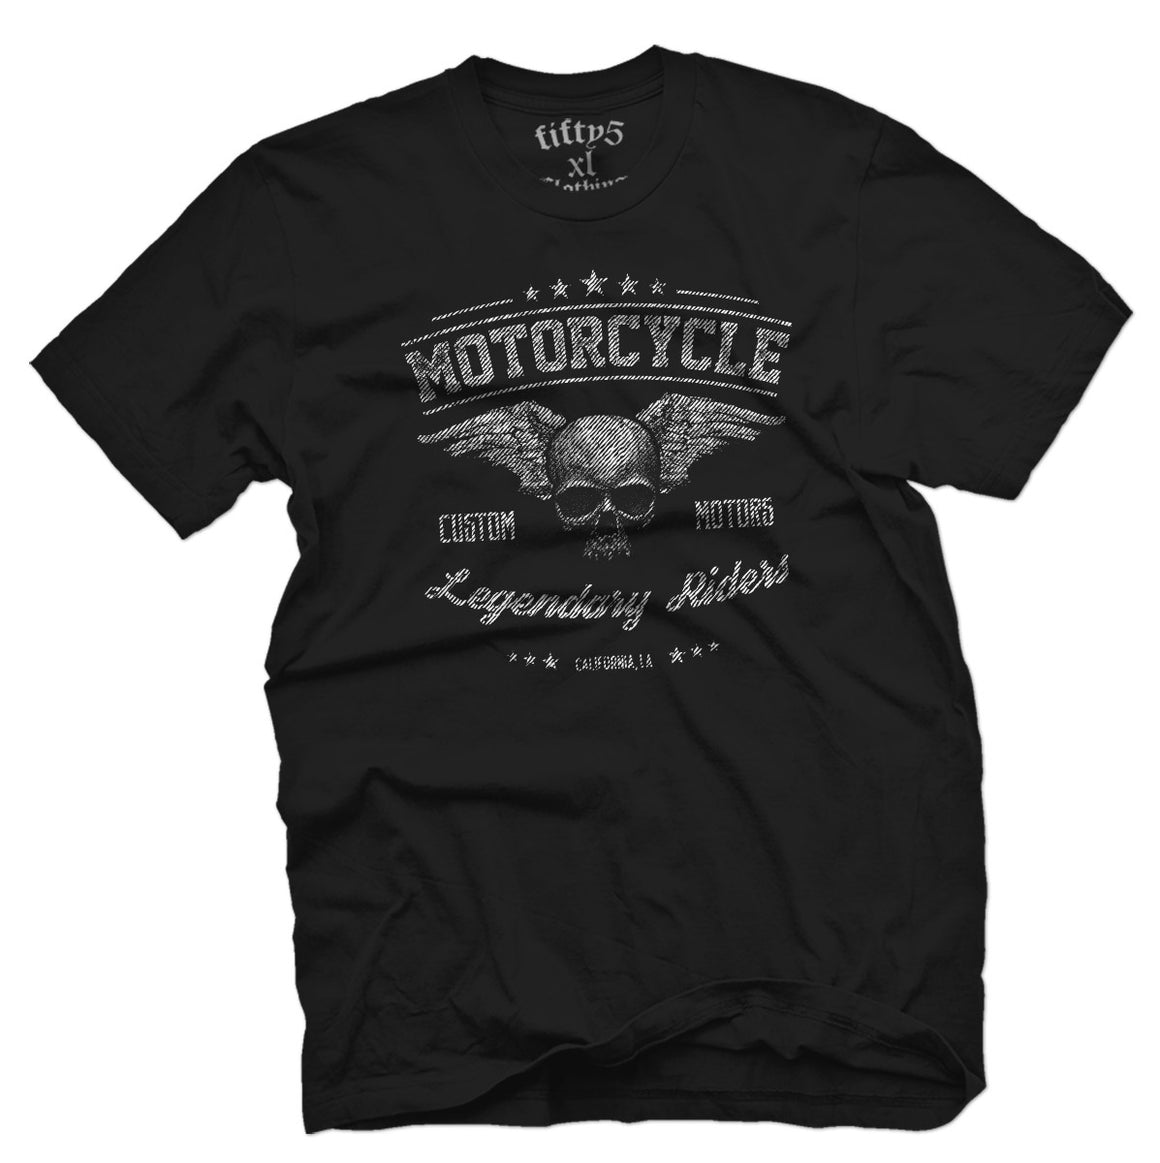 Fifty5 Clothing Legendary Riders Men's T Shirt